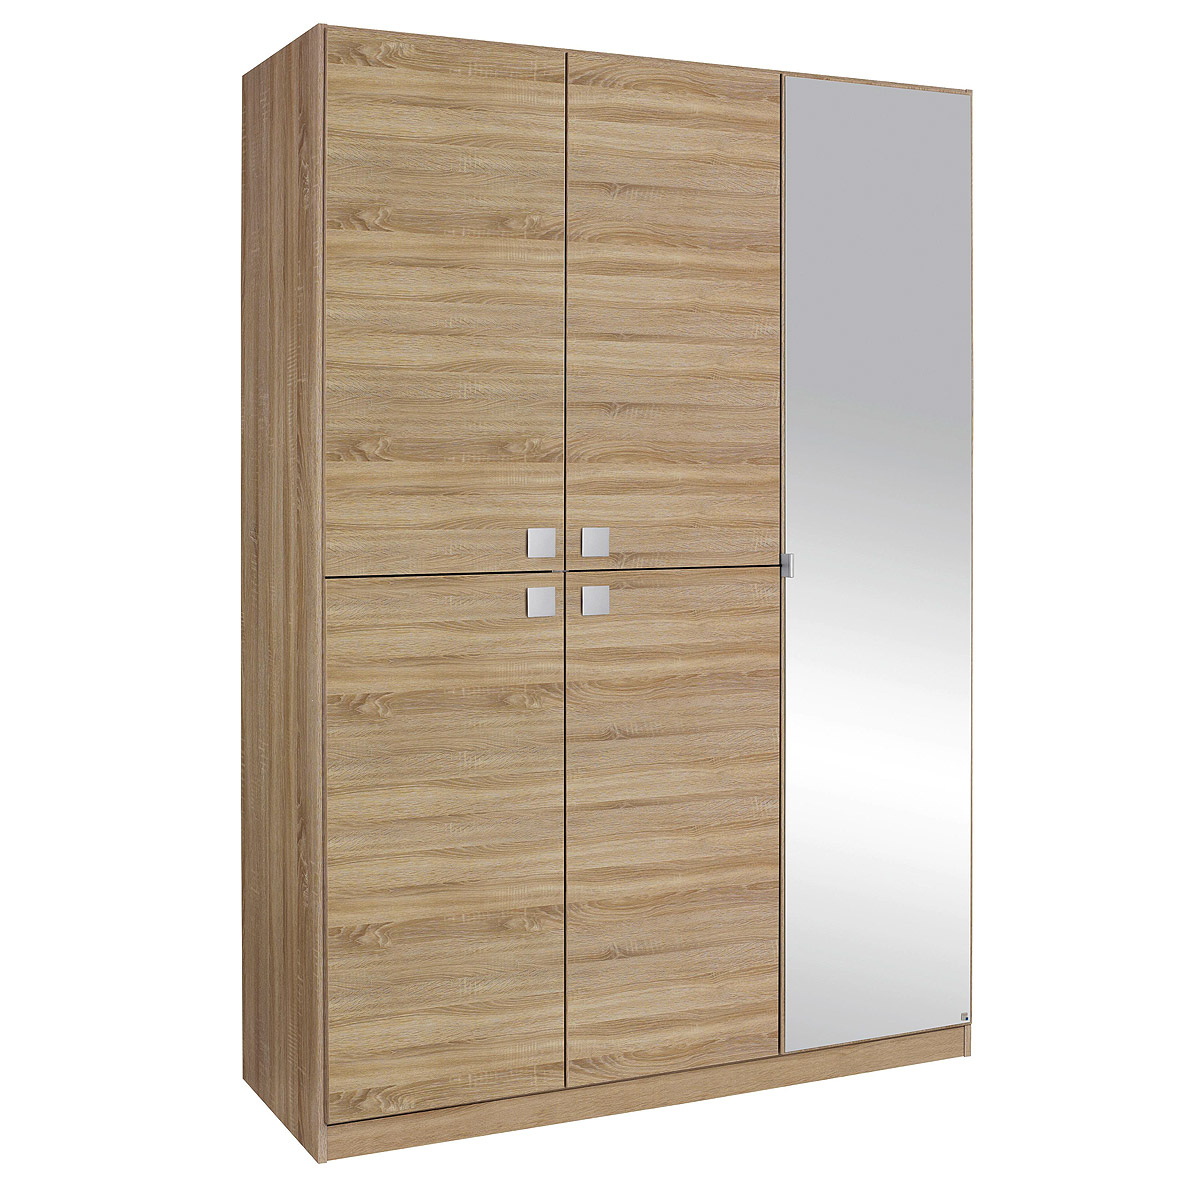 kleiderschrank caria schrank eiche sonoma mit spiegel b 136 cm ebay. Black Bedroom Furniture Sets. Home Design Ideas